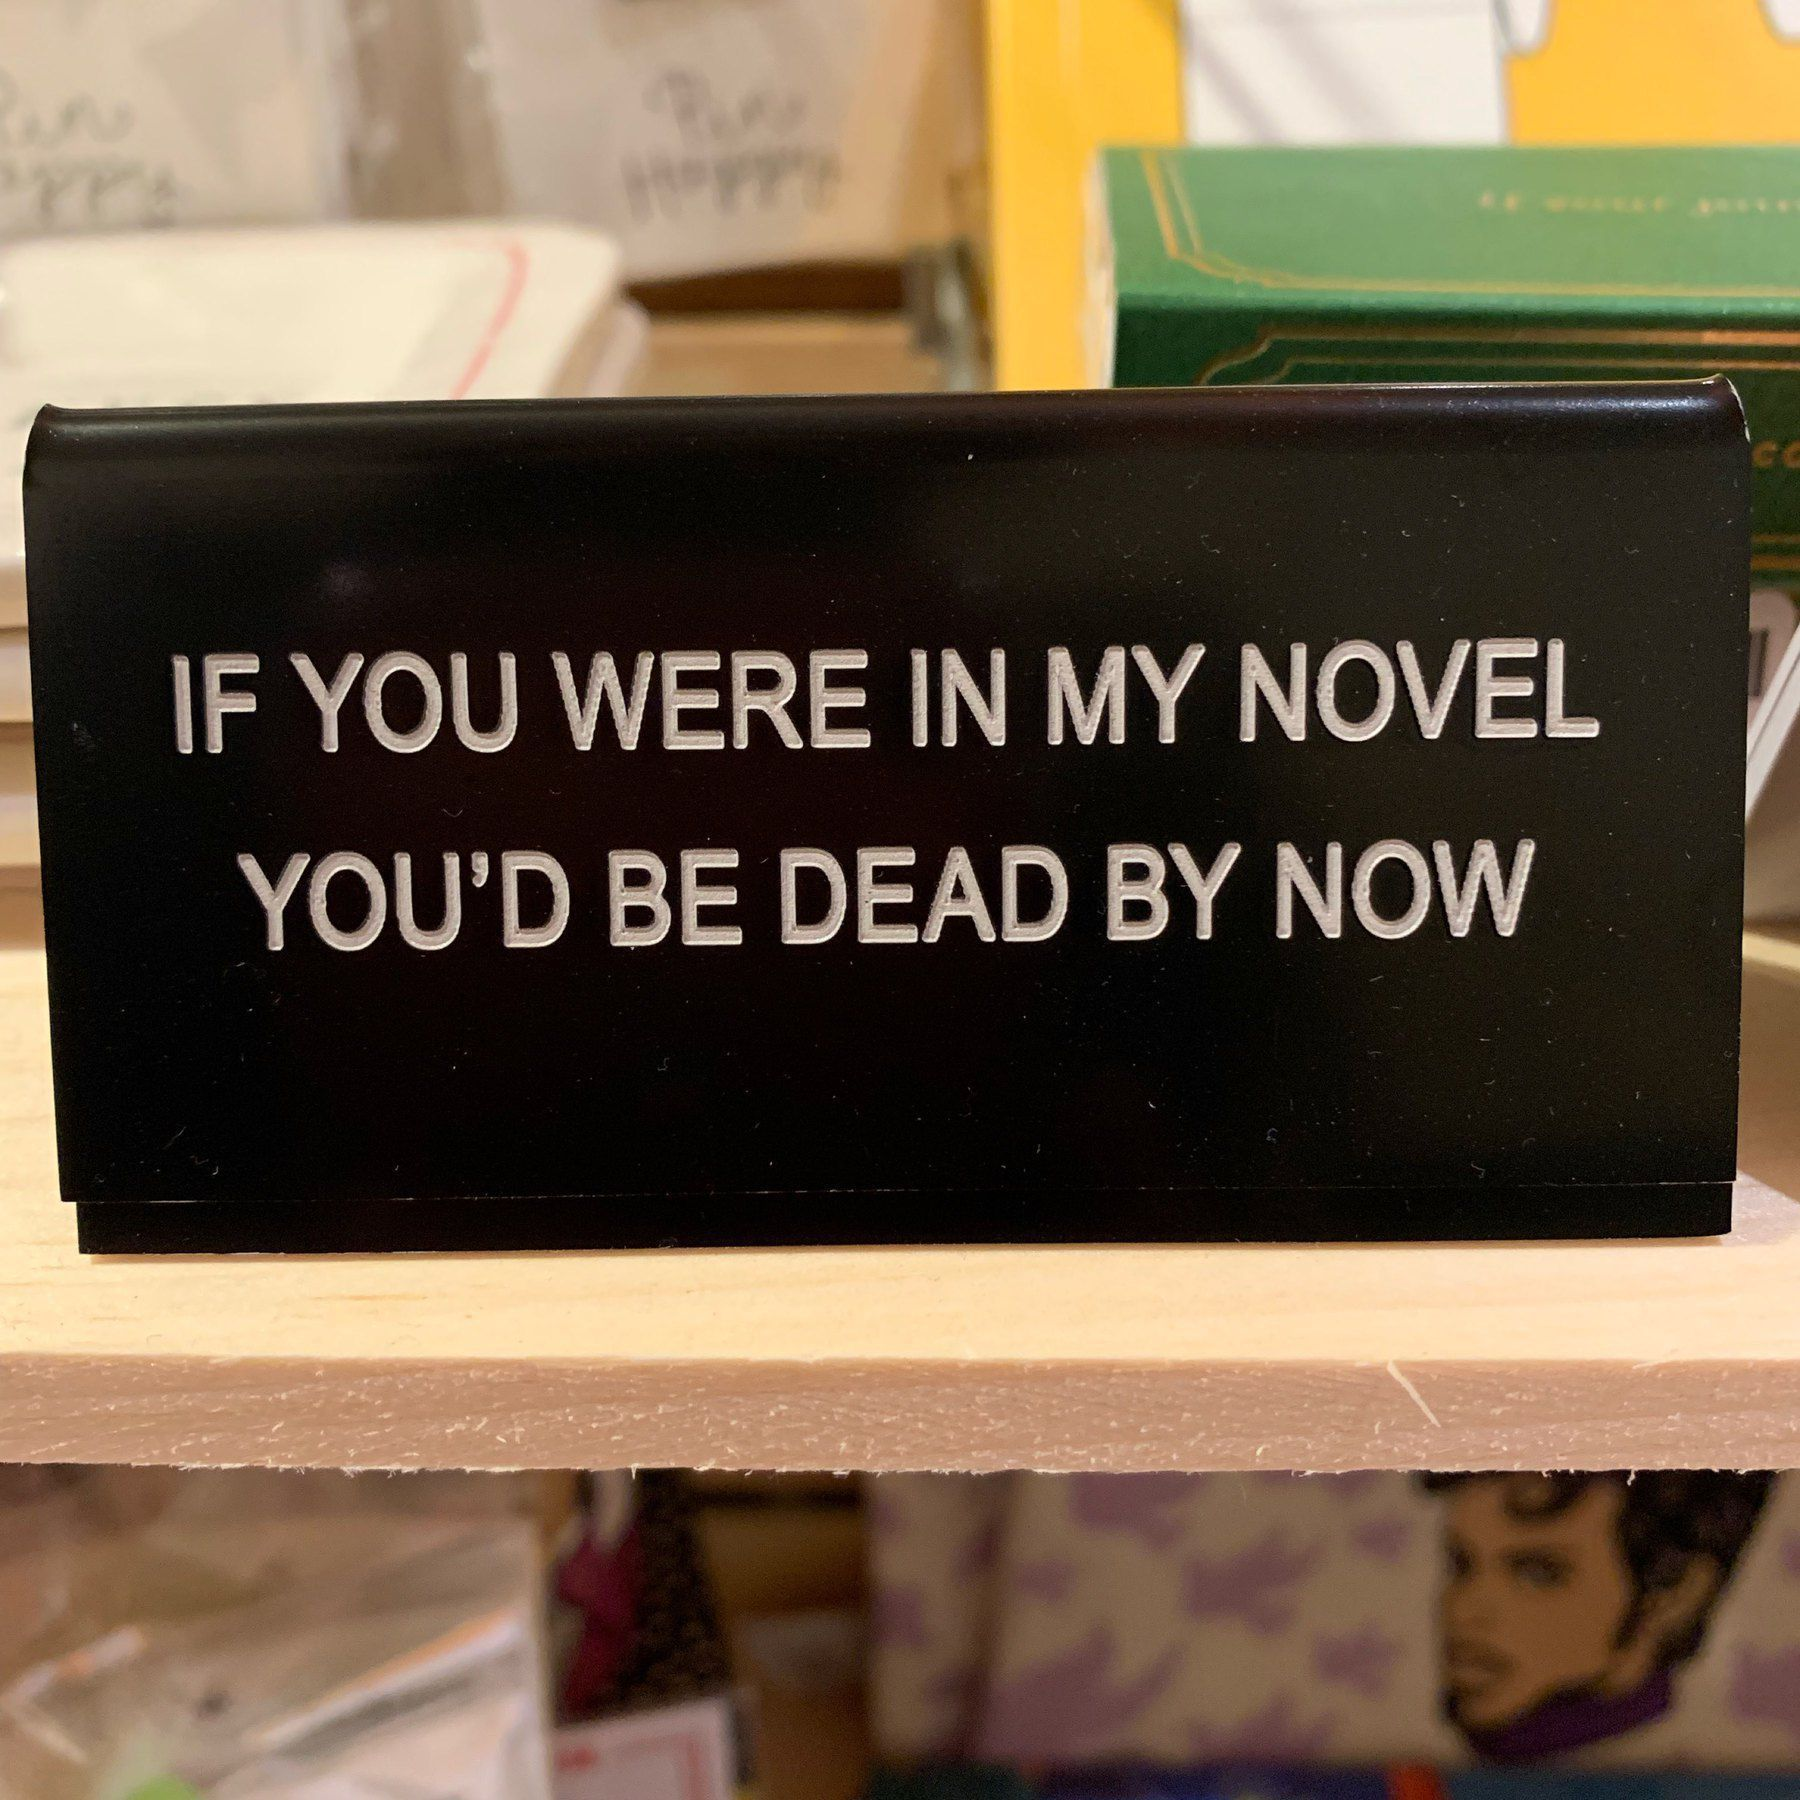 Desk sign reading 'IF YOU WERE IN MY NOVEL YOU'D BE DEAD BY NOW'